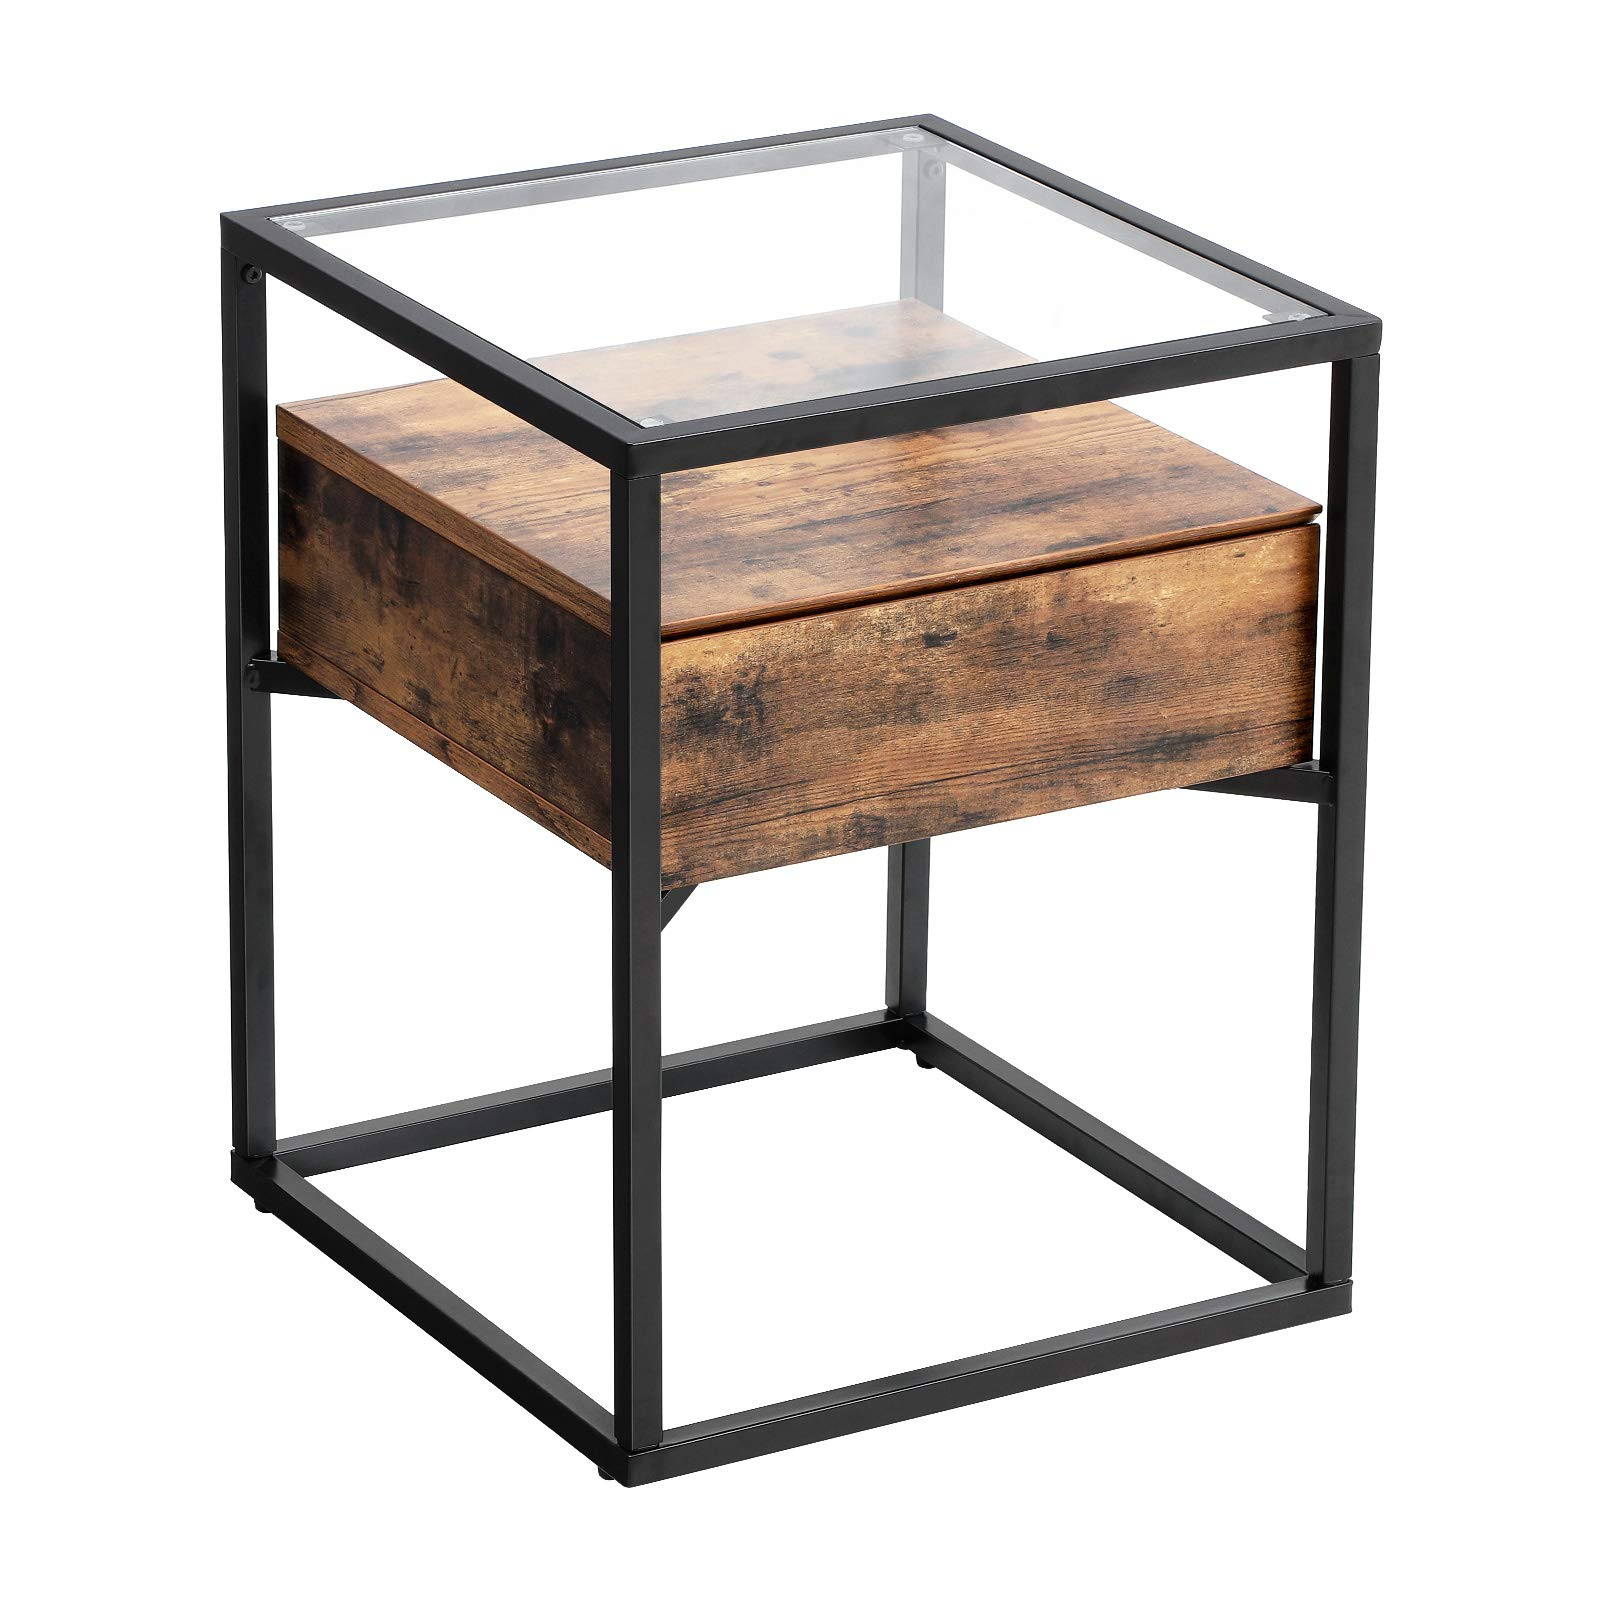 VASAGLE Industrial Side Table, Nightstand, Tempered Glass End Table, with Drawer and Rustic Shelf, Decoration in Living Room, Lounge, Stable Iron Frame ULET04BX by VASAGLE